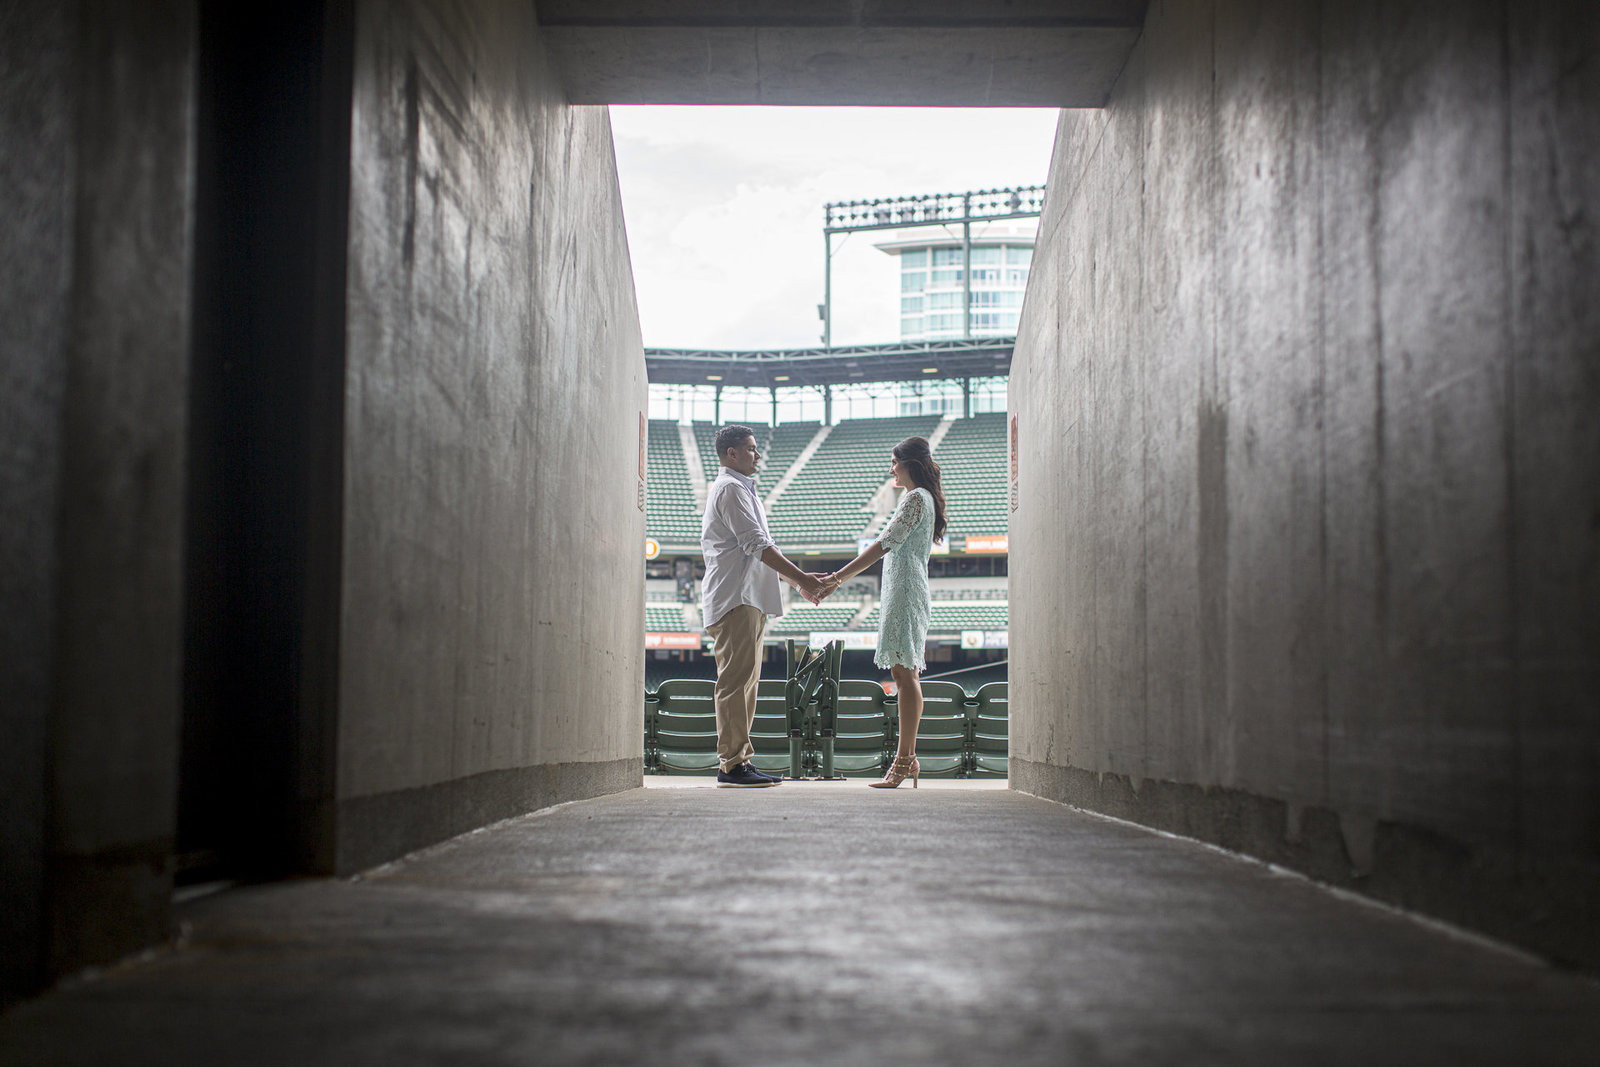 camden-yard-baltimore-md-engagement-andrew-morrell-4